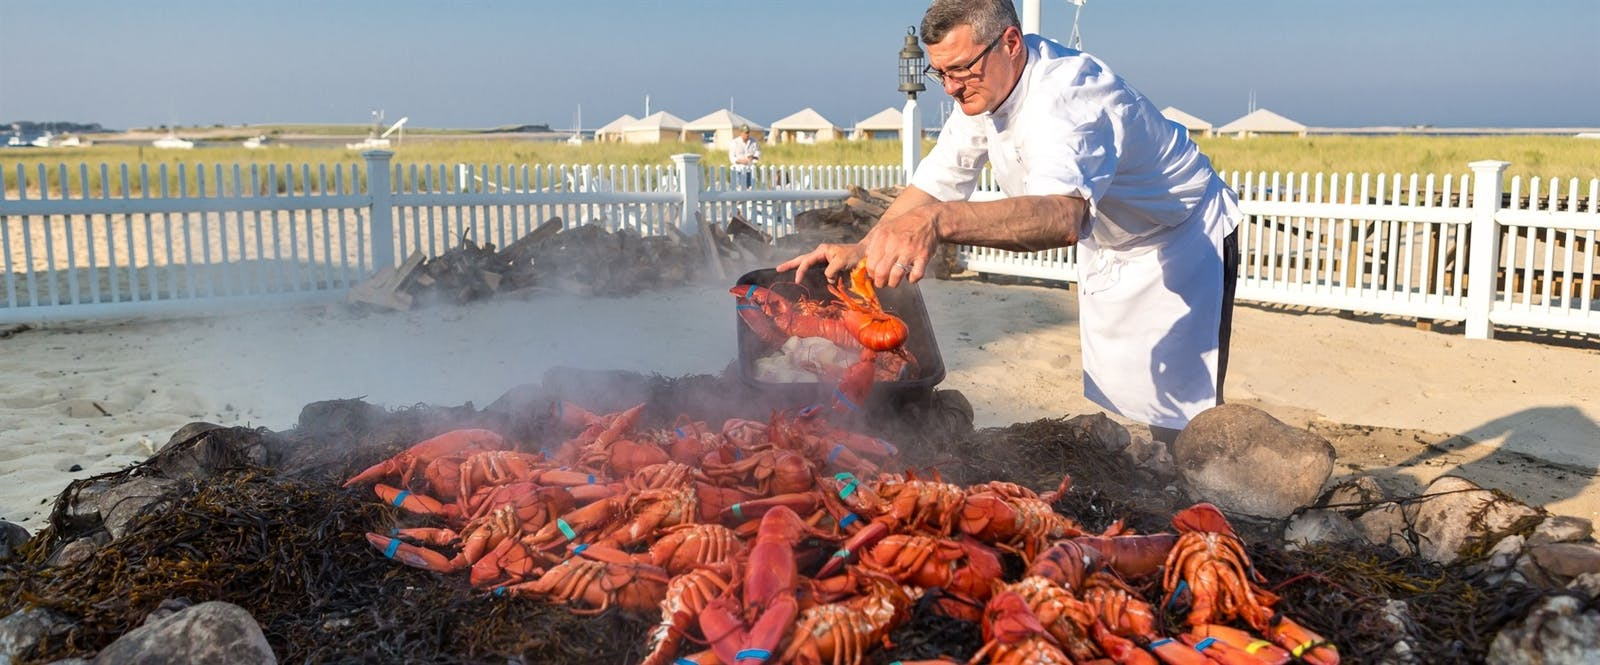 Clambake at Chatham Bars Inn, Chatham, Cape Cod